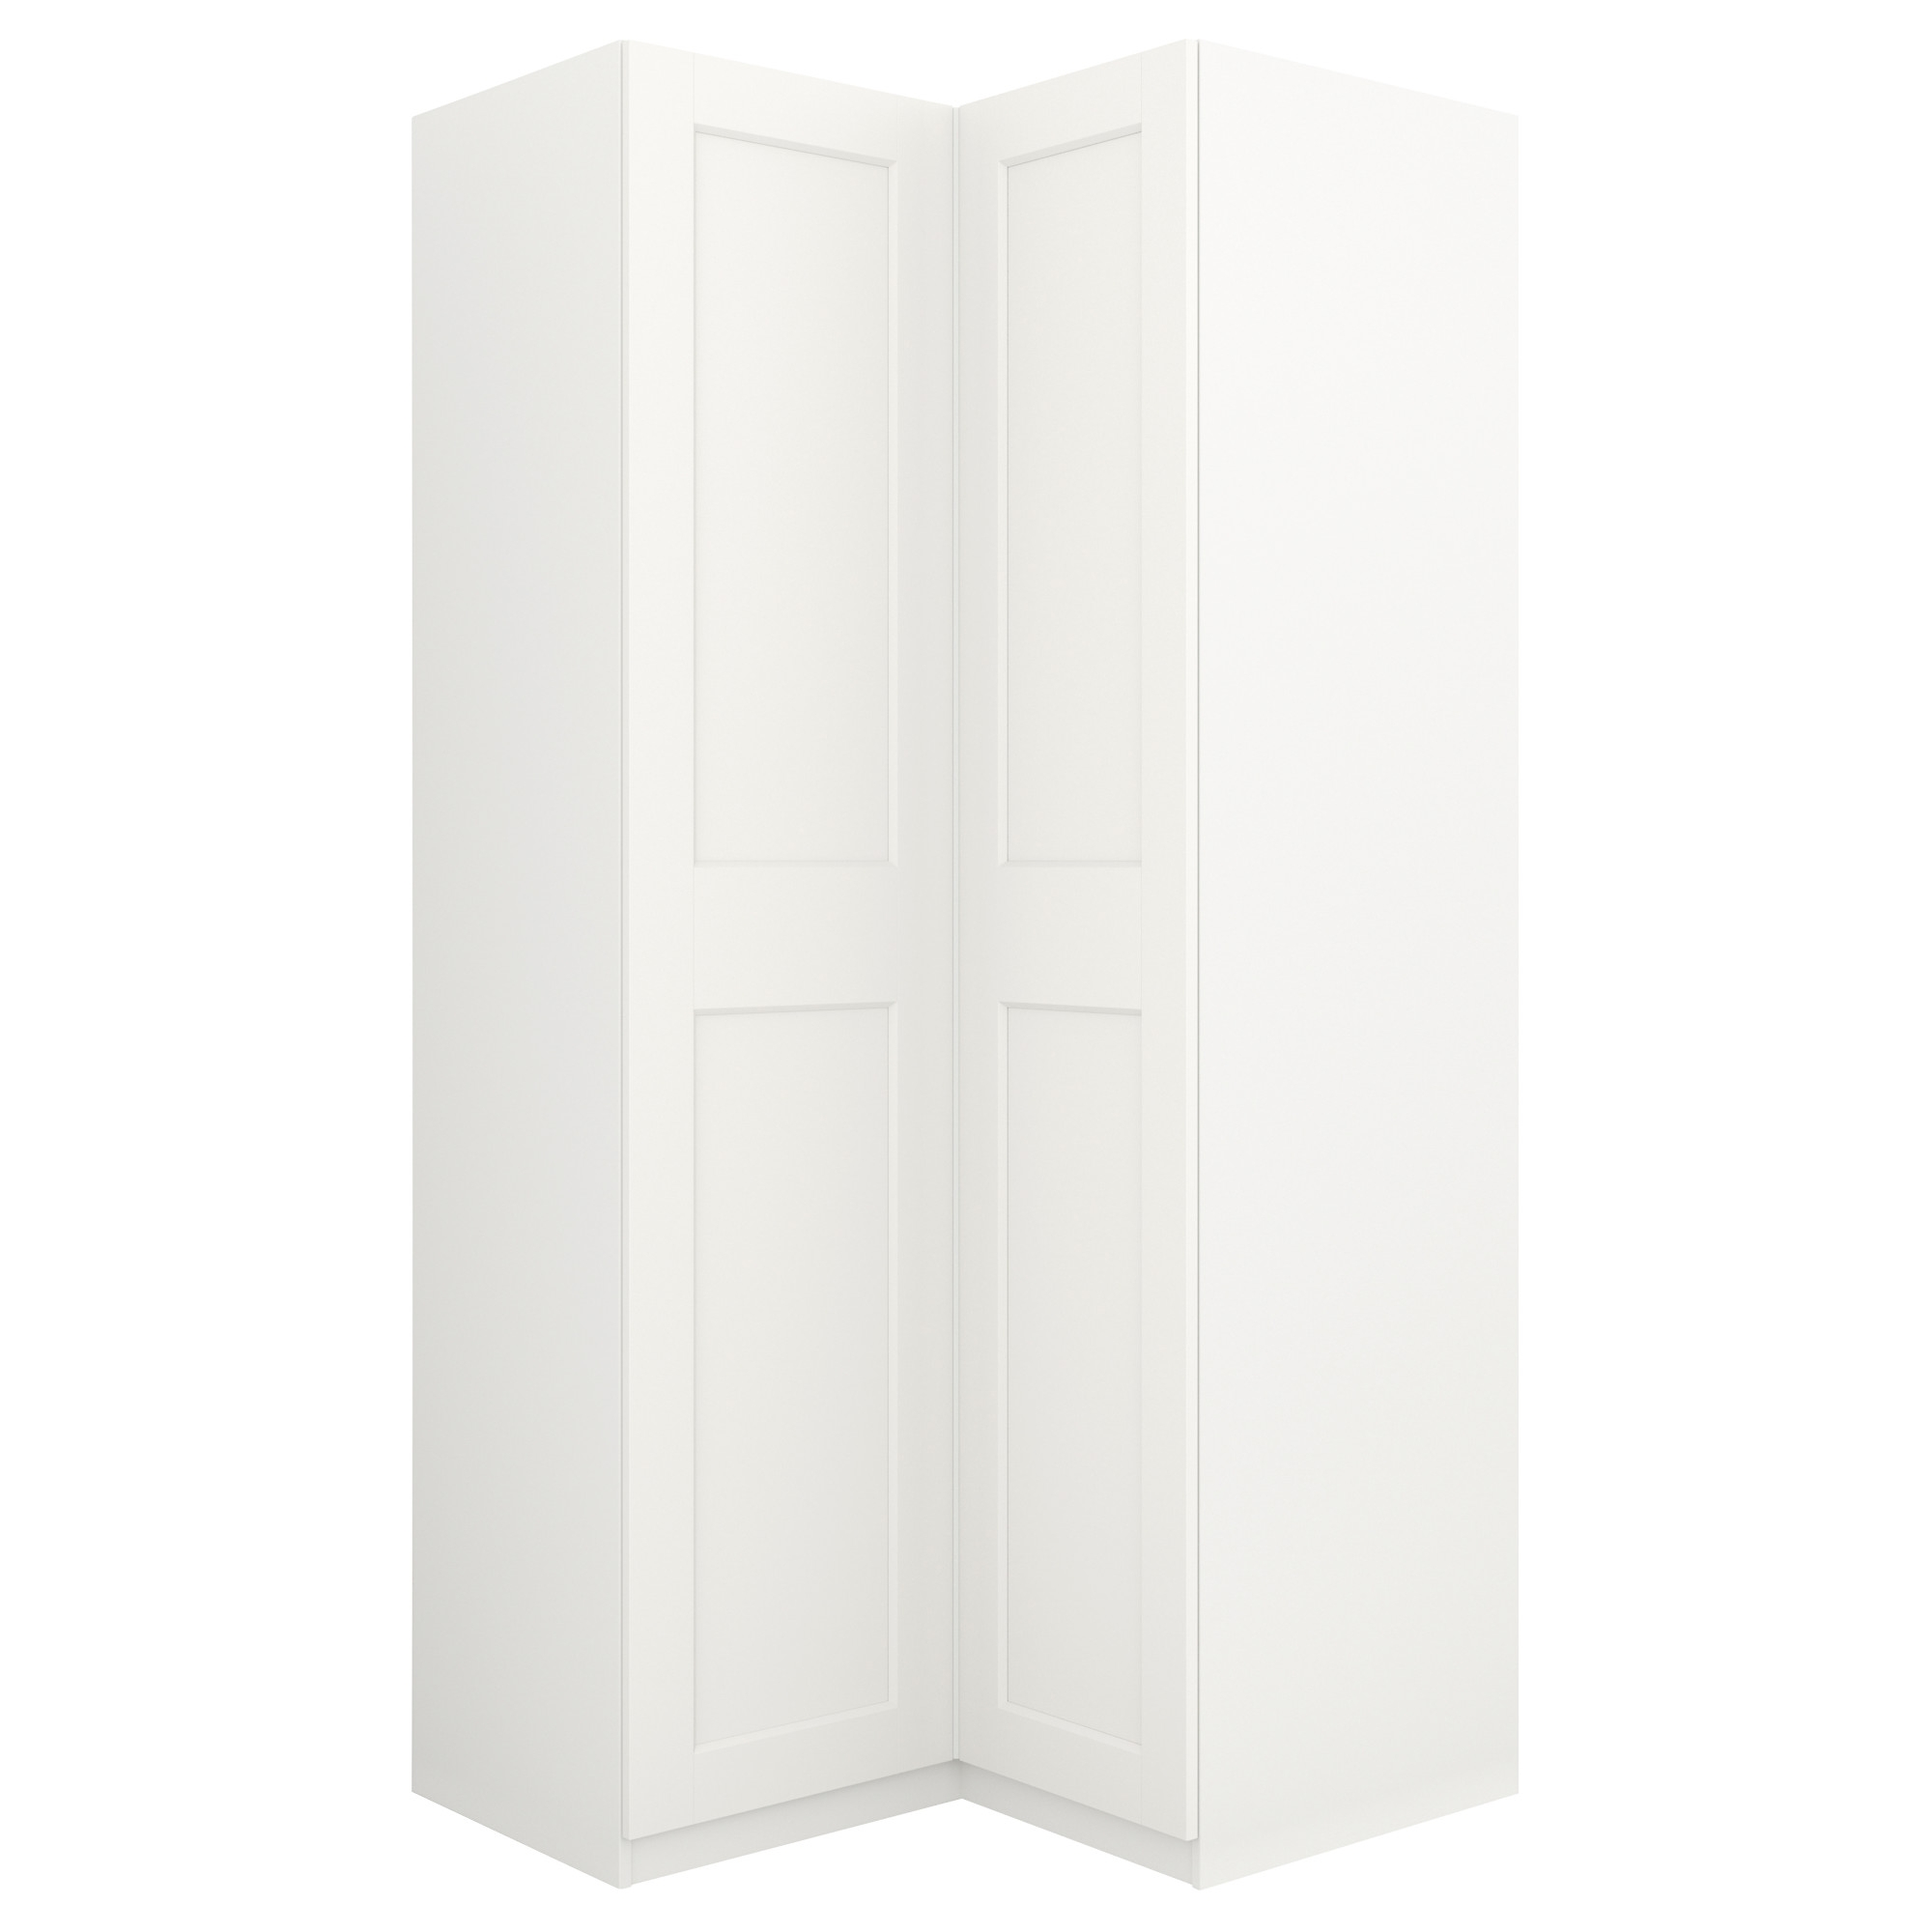 2017 Pax Corner Wardrobe White/grimo White 111/111X236 Cm – Ikea For Curved Corner Wardrobes Doors (View 1 of 15)